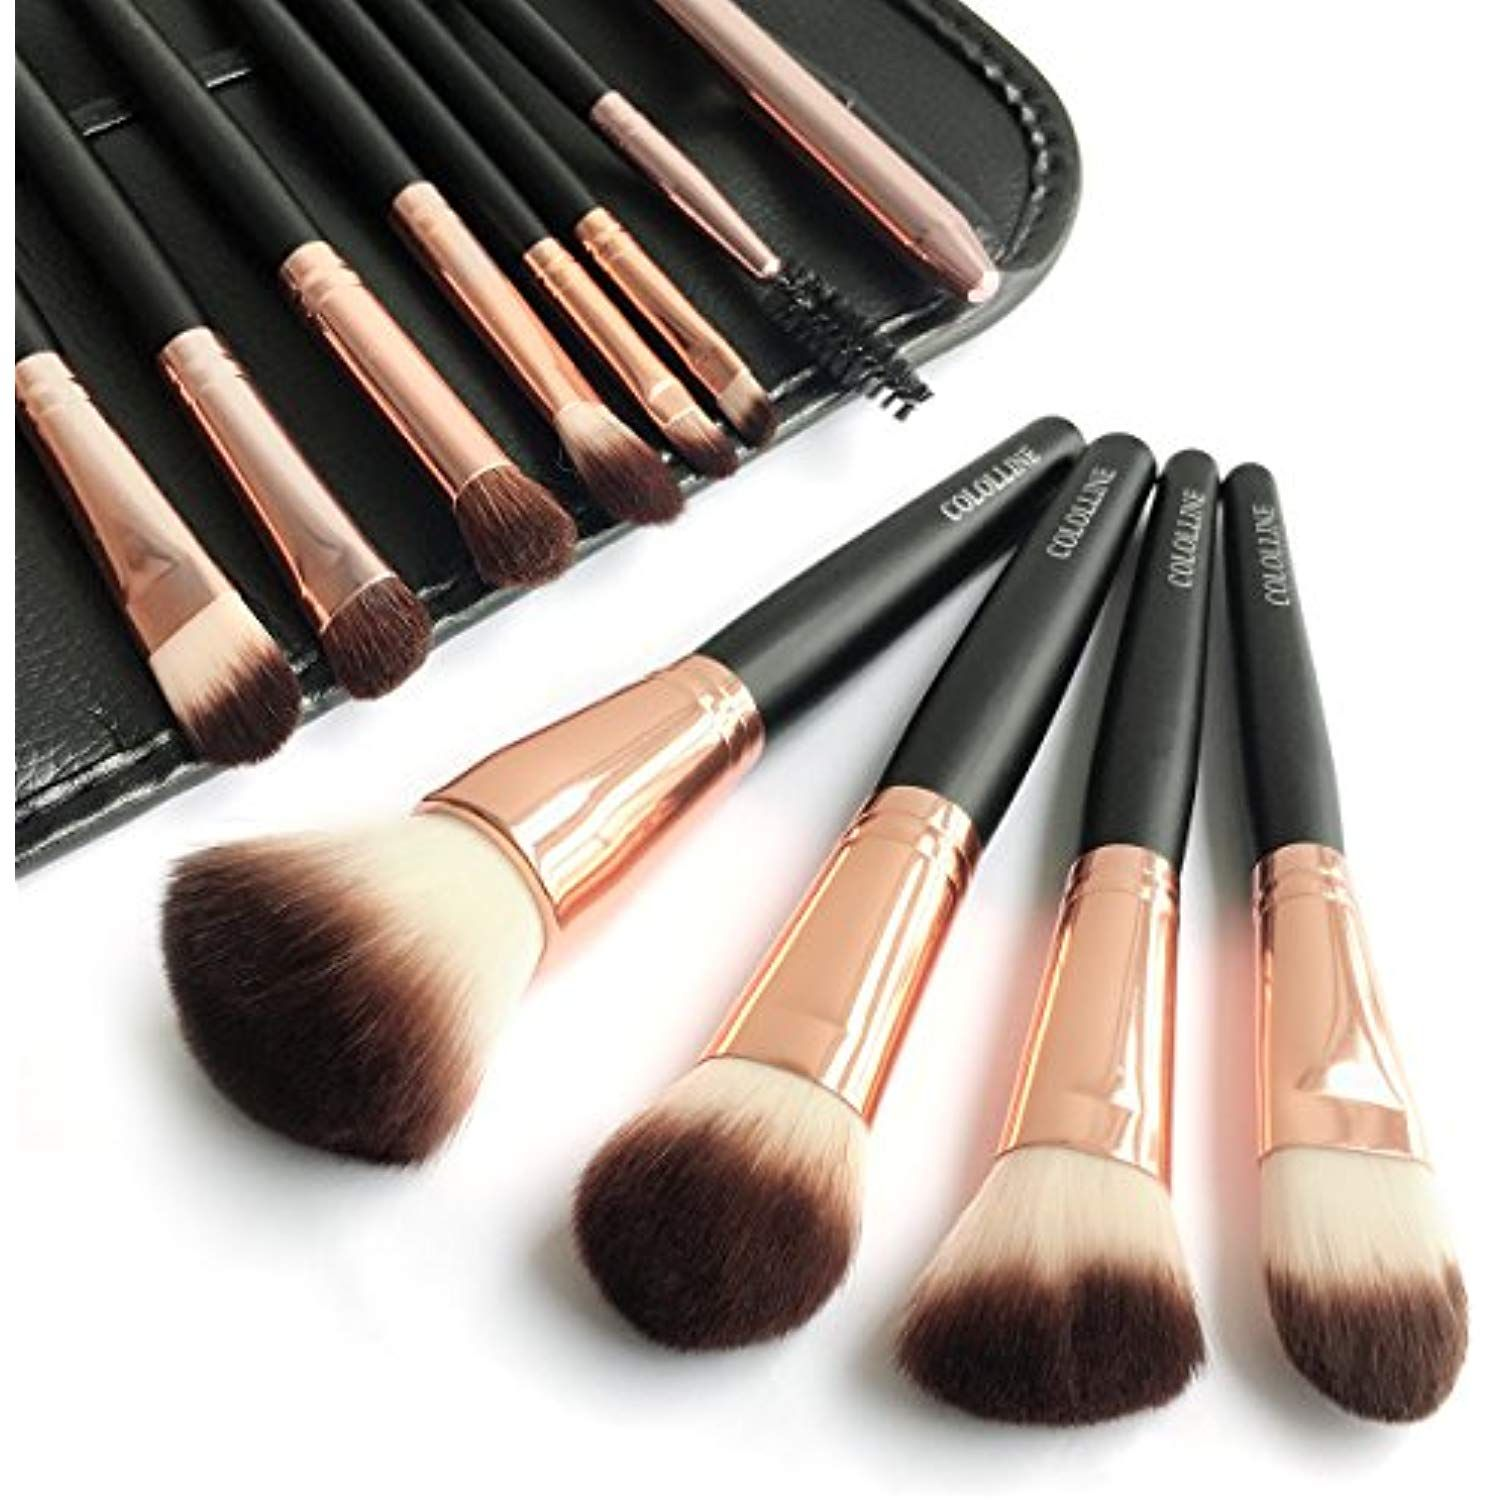 Cololline Makeup Brushes Set 12pcs Soft Synthetic Hair And Nature Bristles Professional Ma Makeup Brush Set Makeup Brush Set Professional Oval Makeup Brush Set